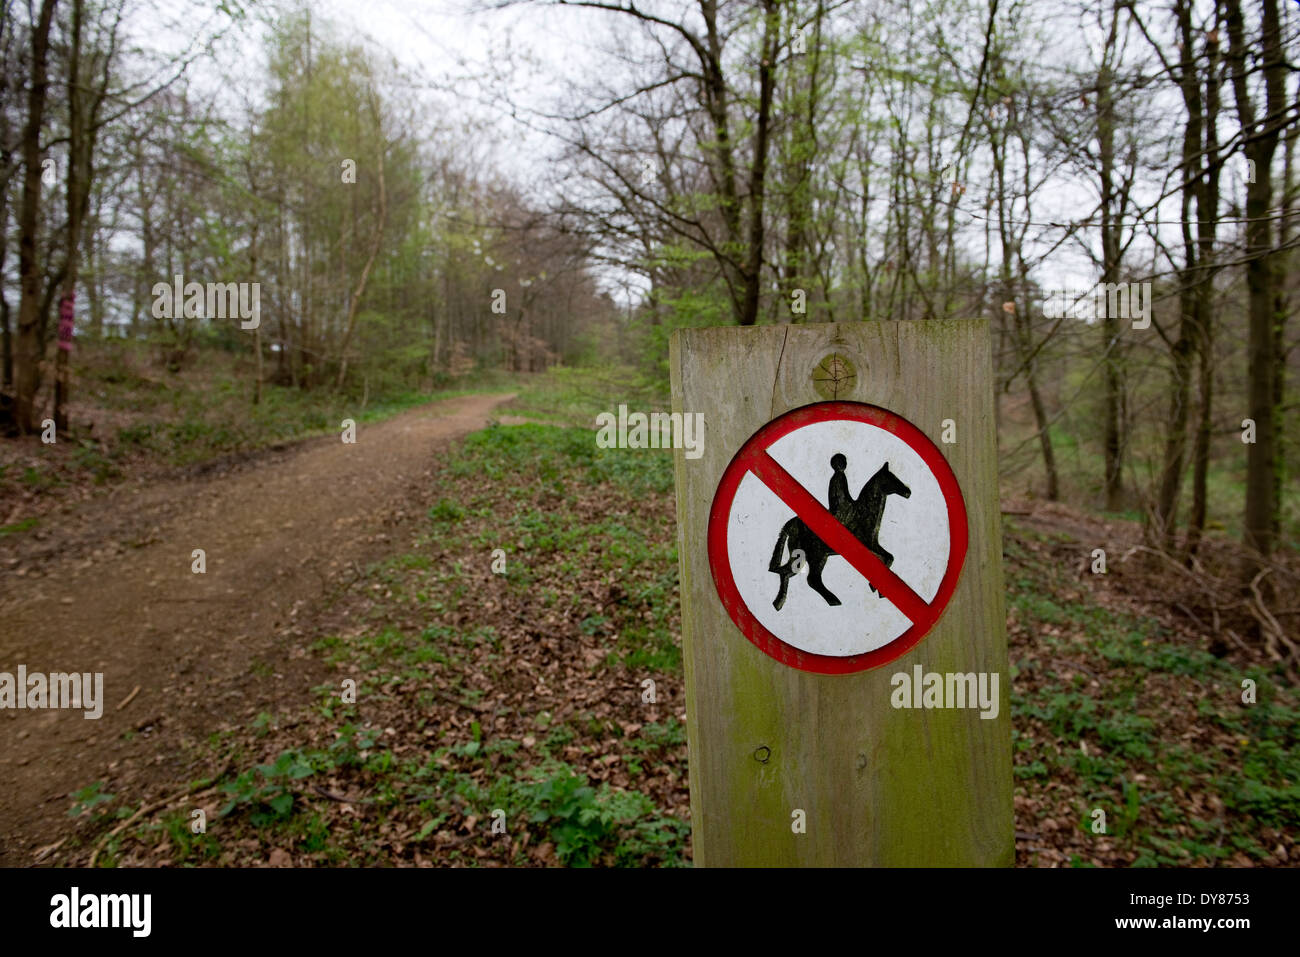 Mantle's Wood, near Hyde Heath in Buckinghamshire.  On the proposed HS2 train route through the Chilterns. - Stock Image